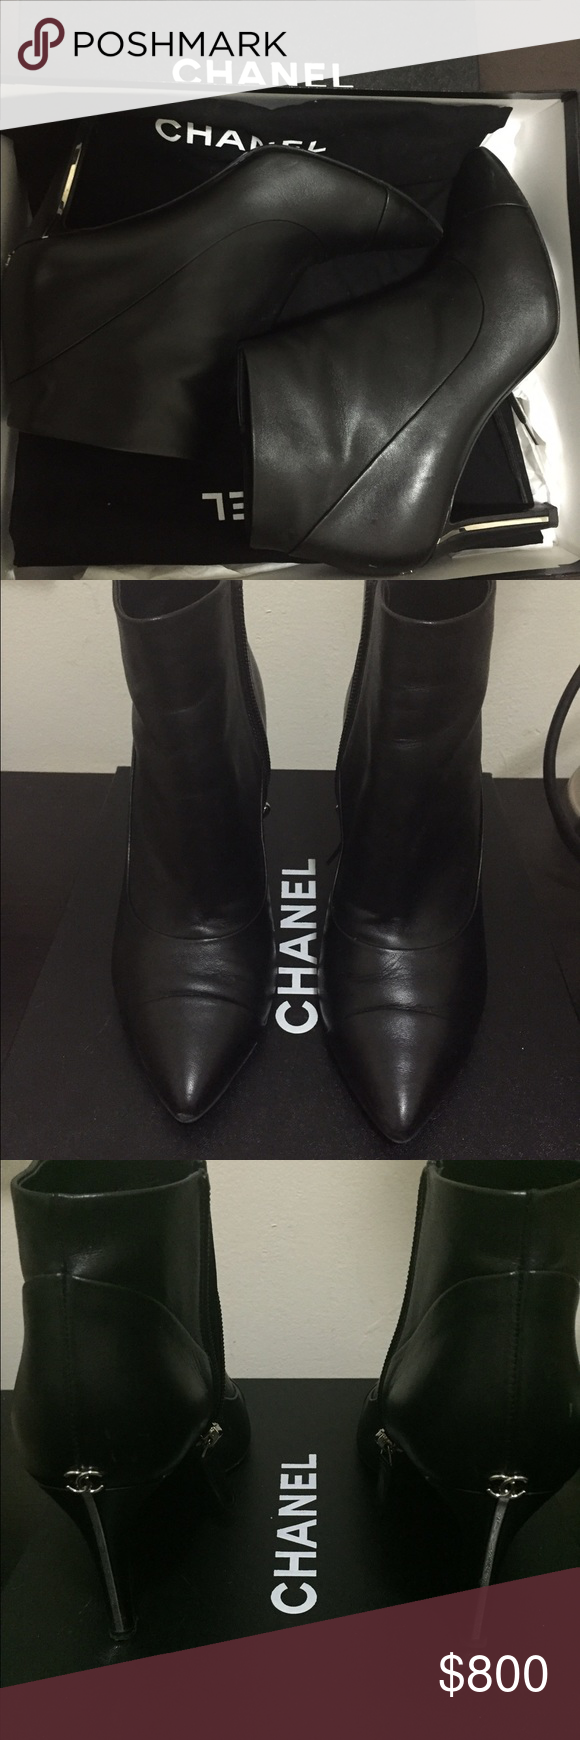 Chanel Ankle Booties Black with silver heel. Worn twice. Size 6.5 U.S. Comes with bags and box. Chanel Shoes Ankle Boots & Booties